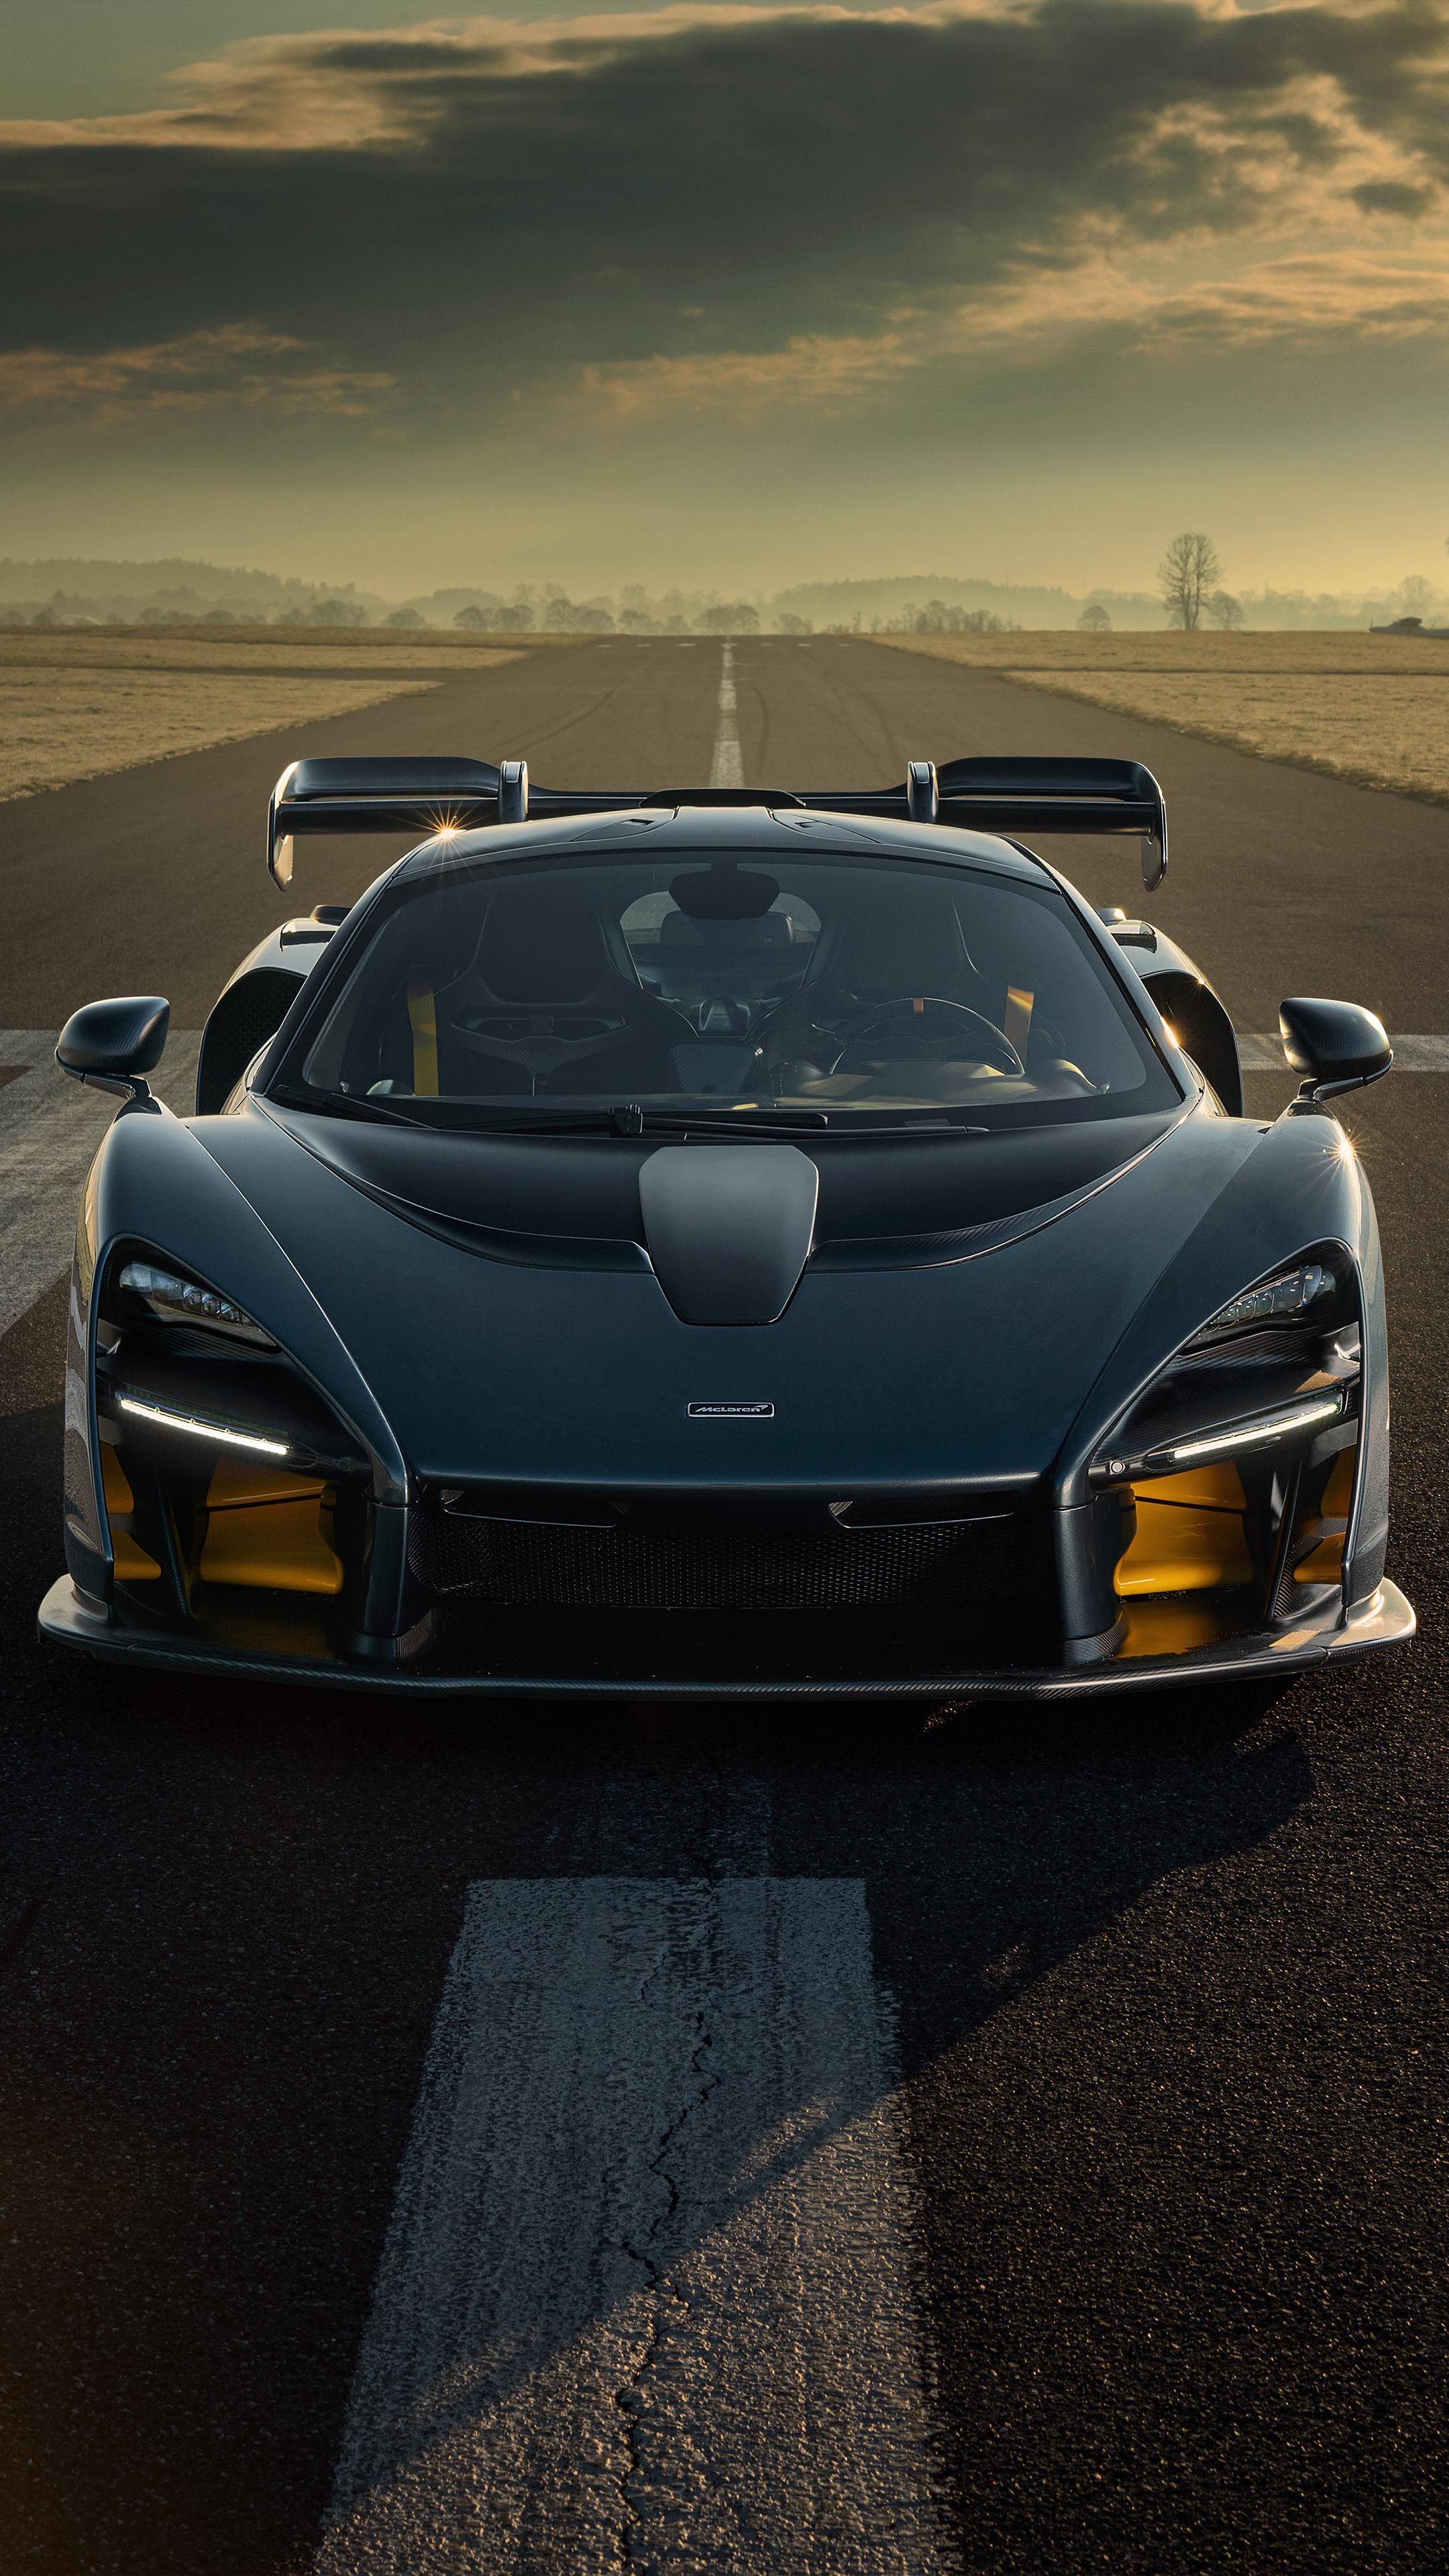 Of course, most of the cars available do not stand out for their attractive looks or bestial power. Novitec Mclaren Senna 2020 4k Ultra Hd Mobile Wallpaper Car Wallpapers Sports Cars Luxury Super Cars